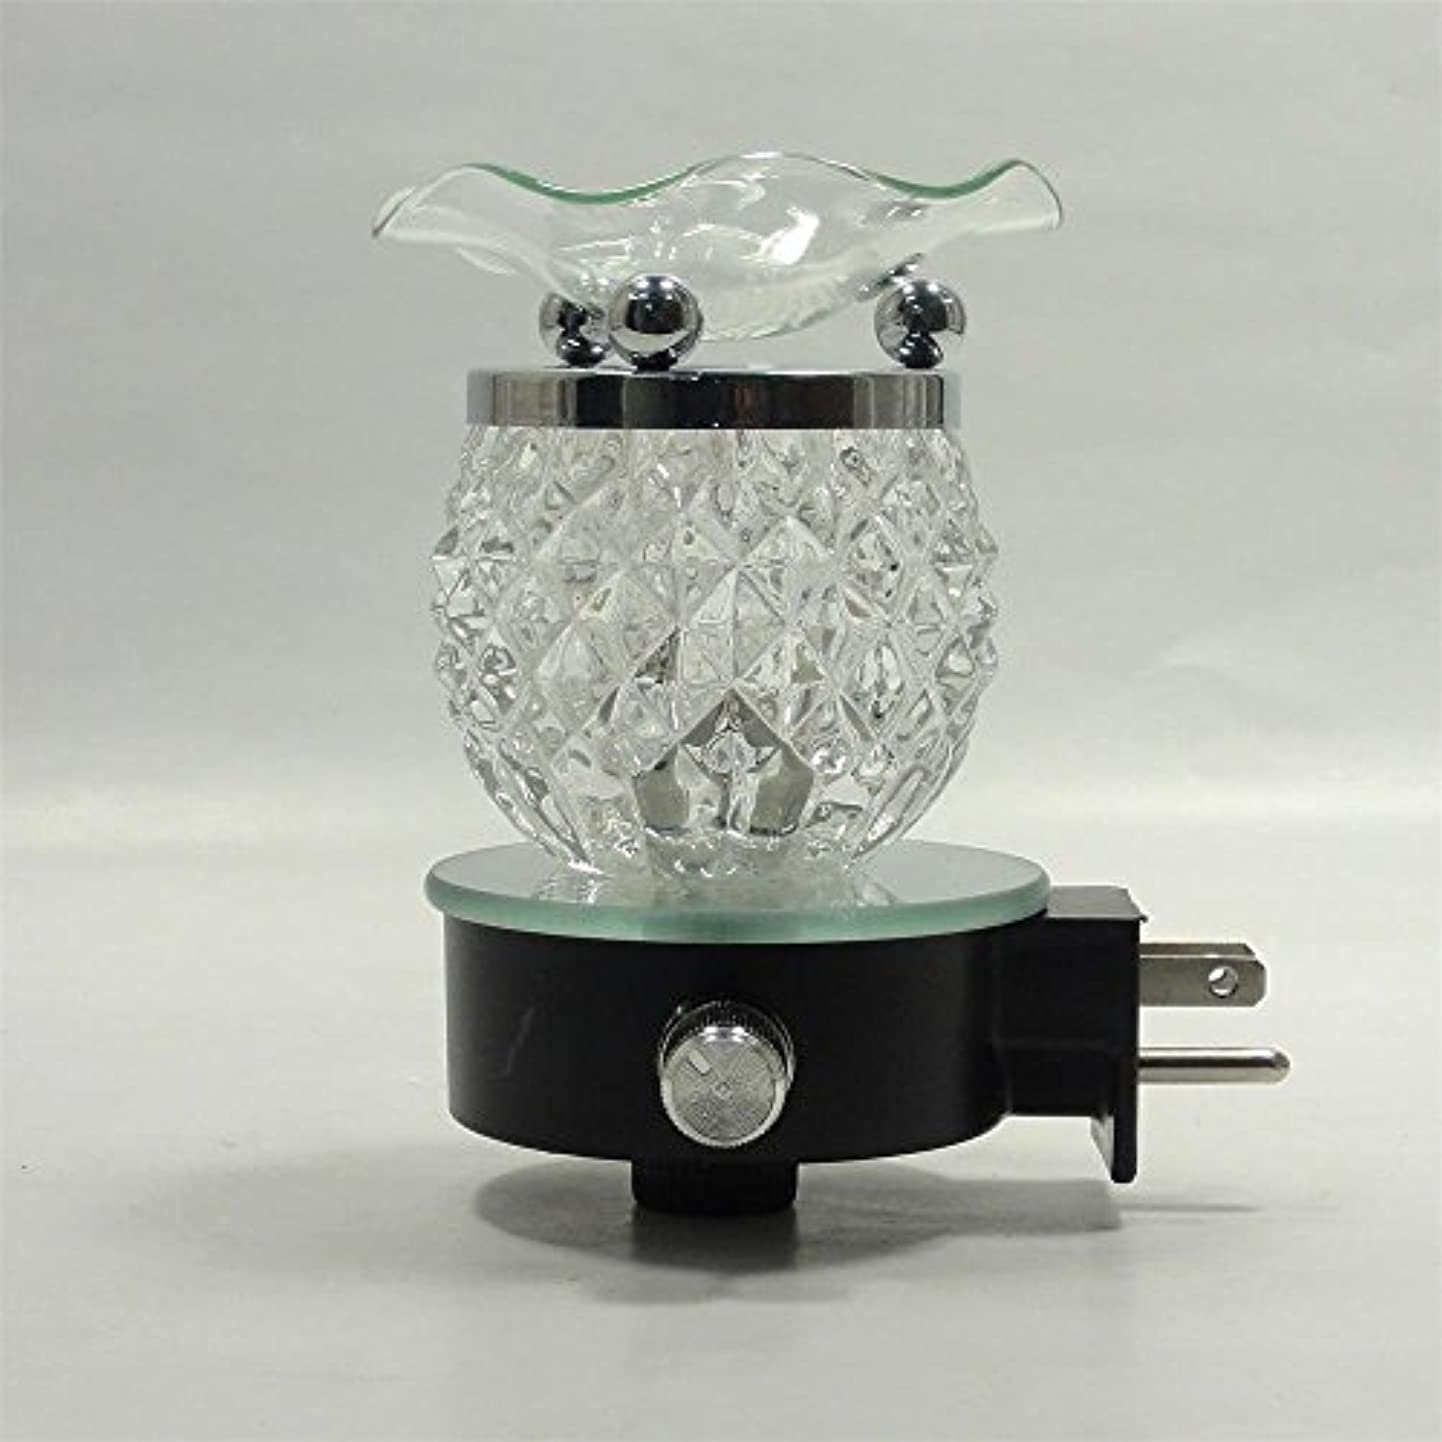 右バックエールElectric Oil Warmer Burner Tart Diffuserアロマ香りつきFragrance Essential Oils壁プラグinランプ